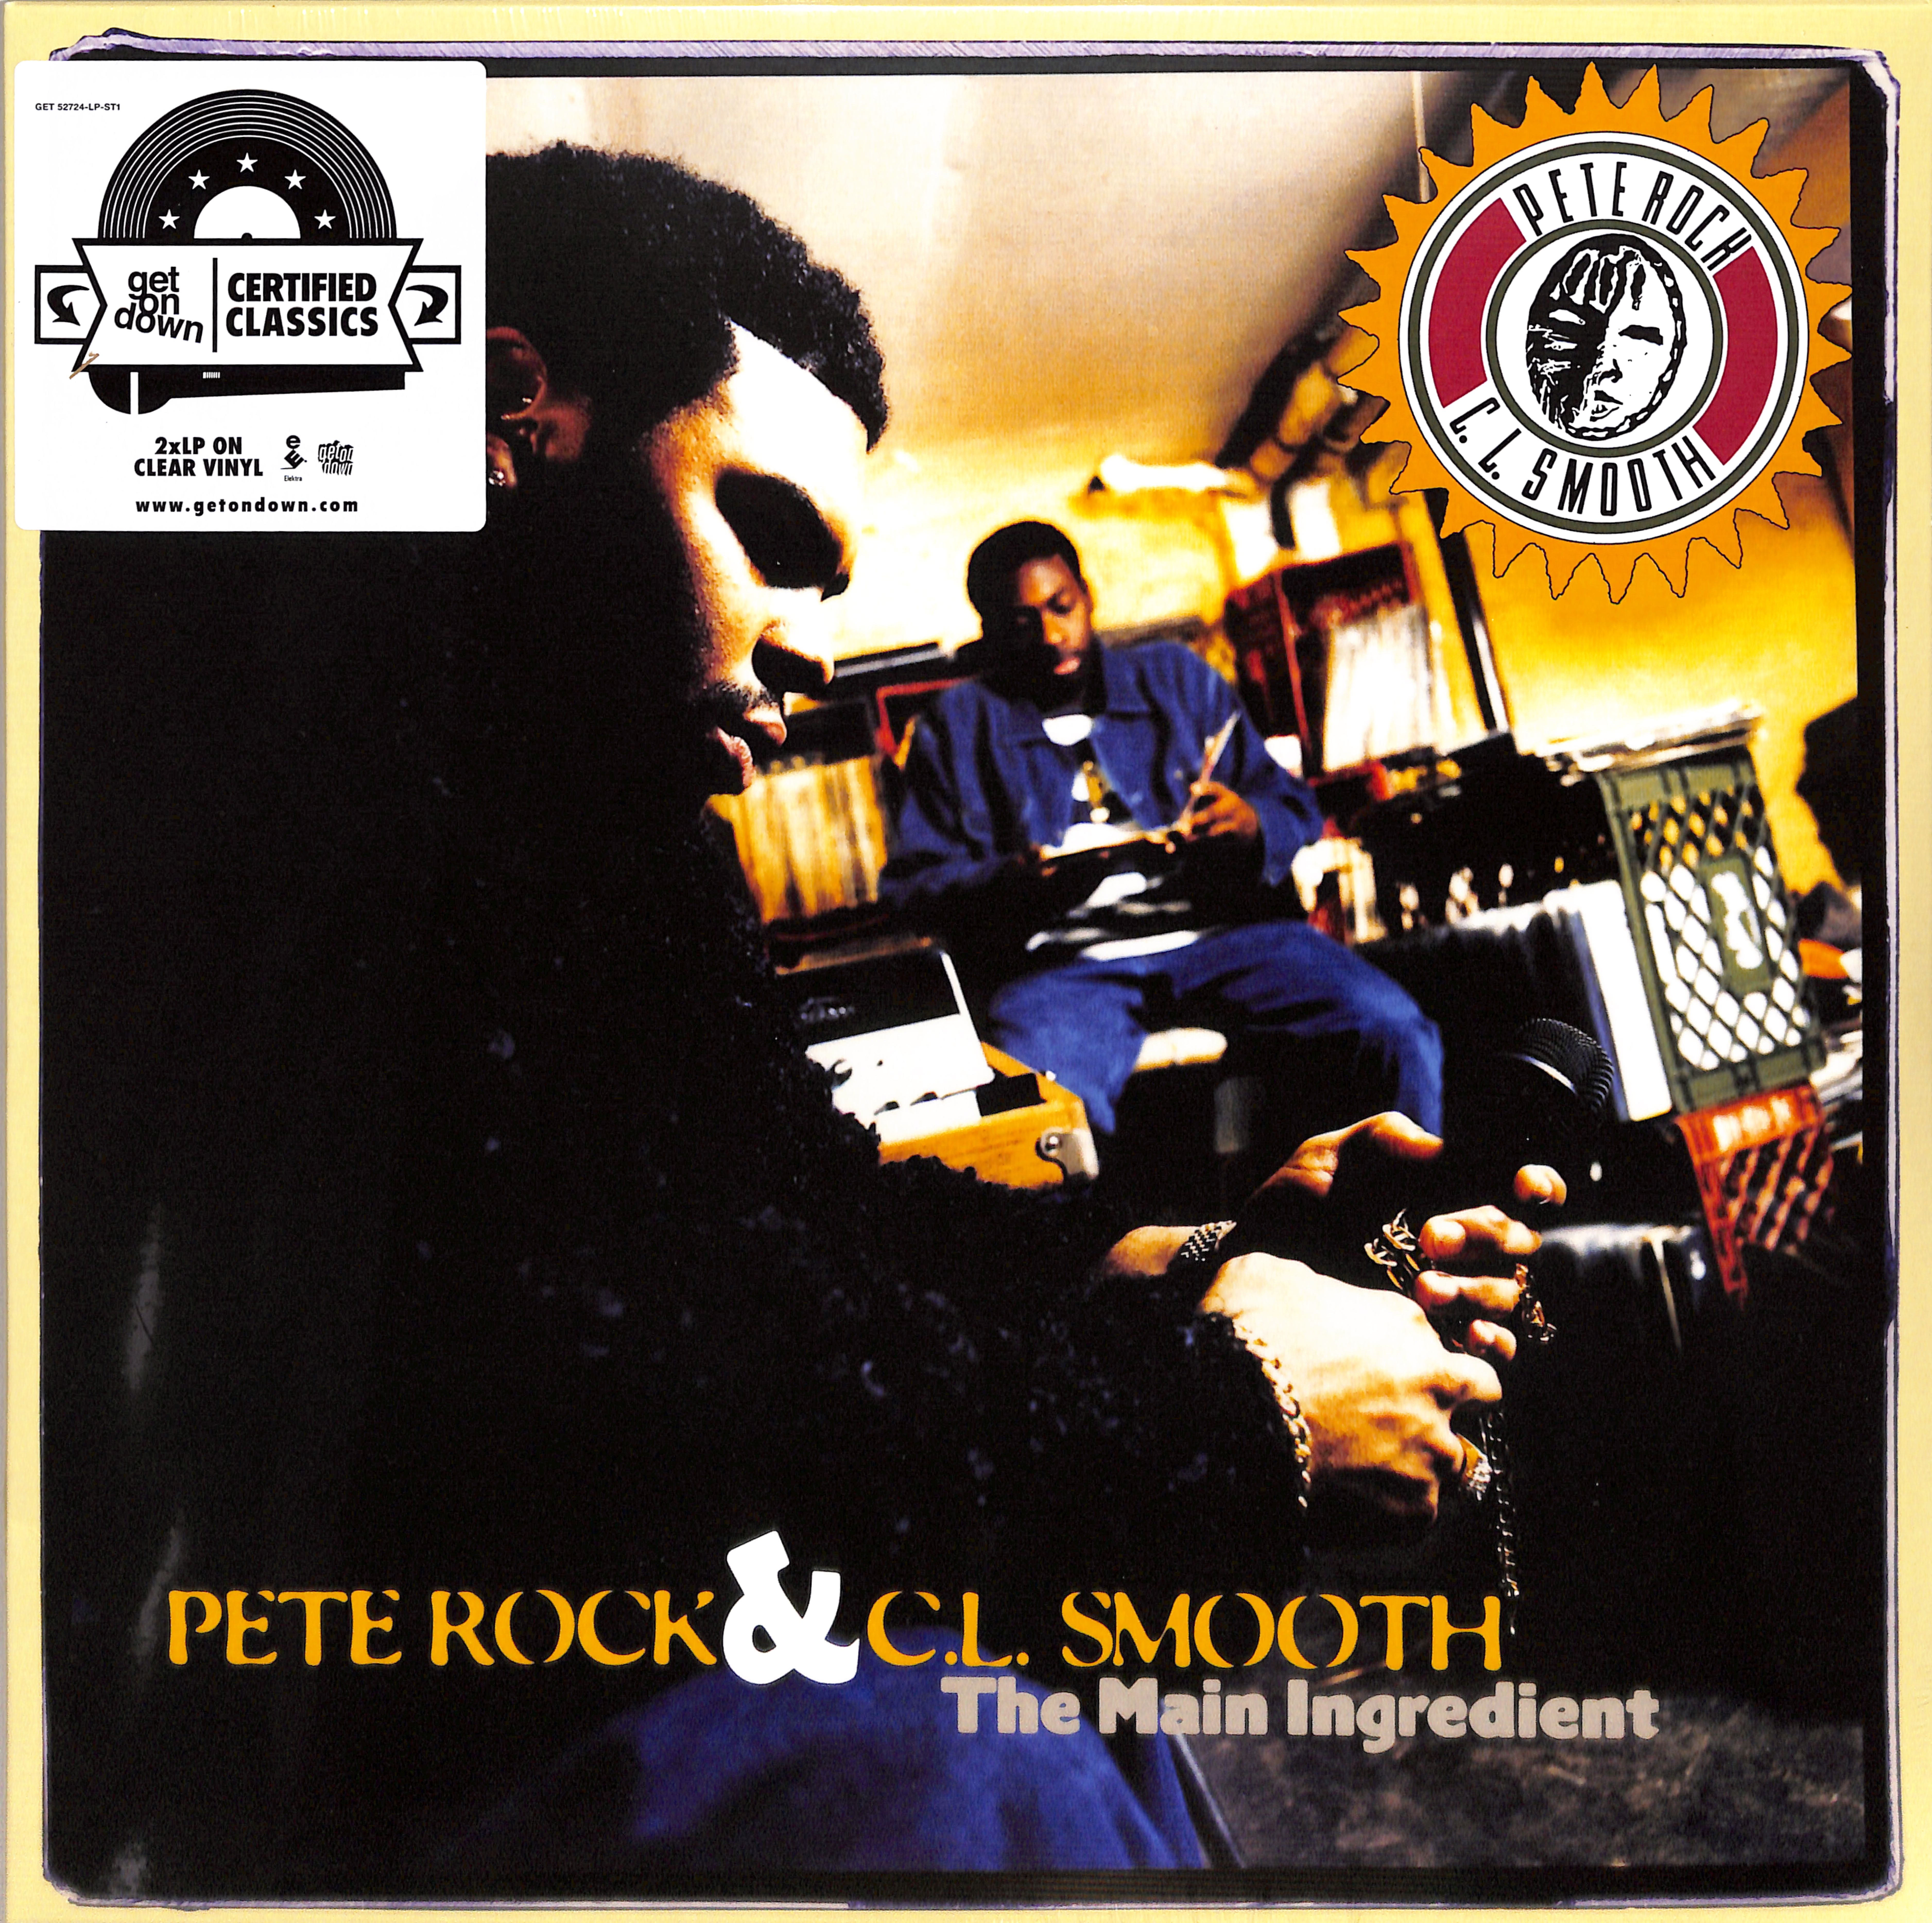 Pete Rock & C.L. Smooth - THE MAIN INGREDIENT